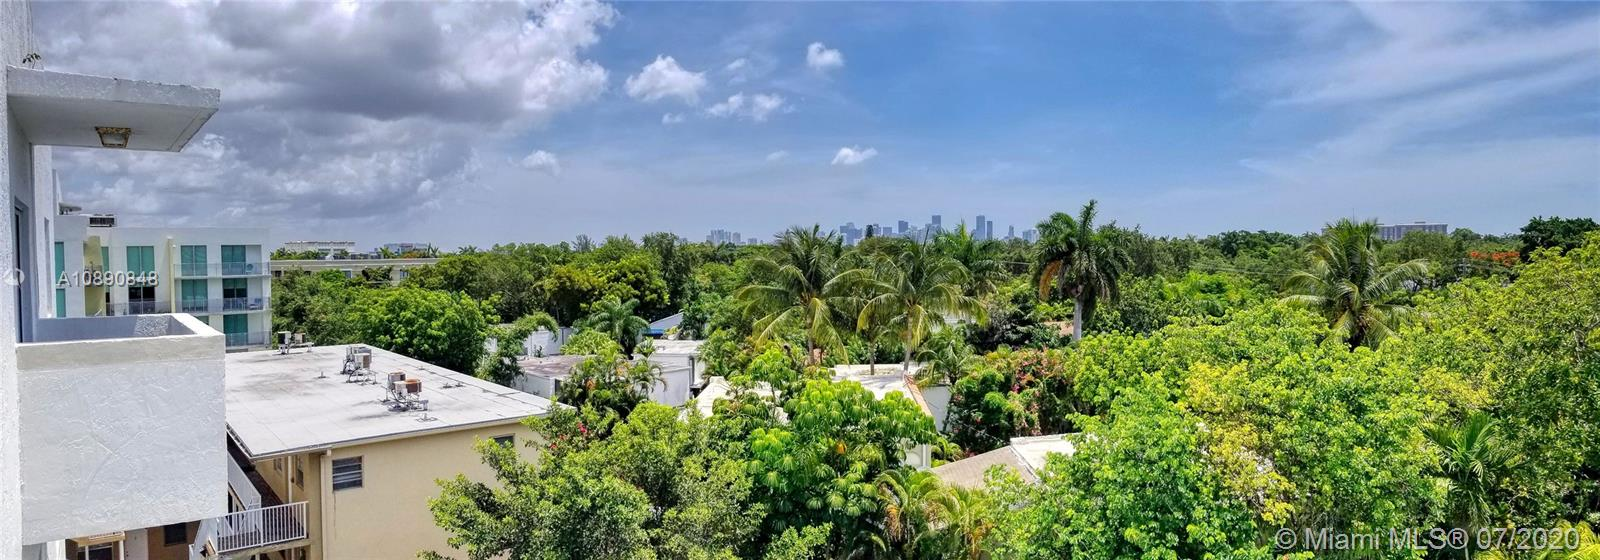 3051 SW 27th Ave #503 For Sale A10890848, FL